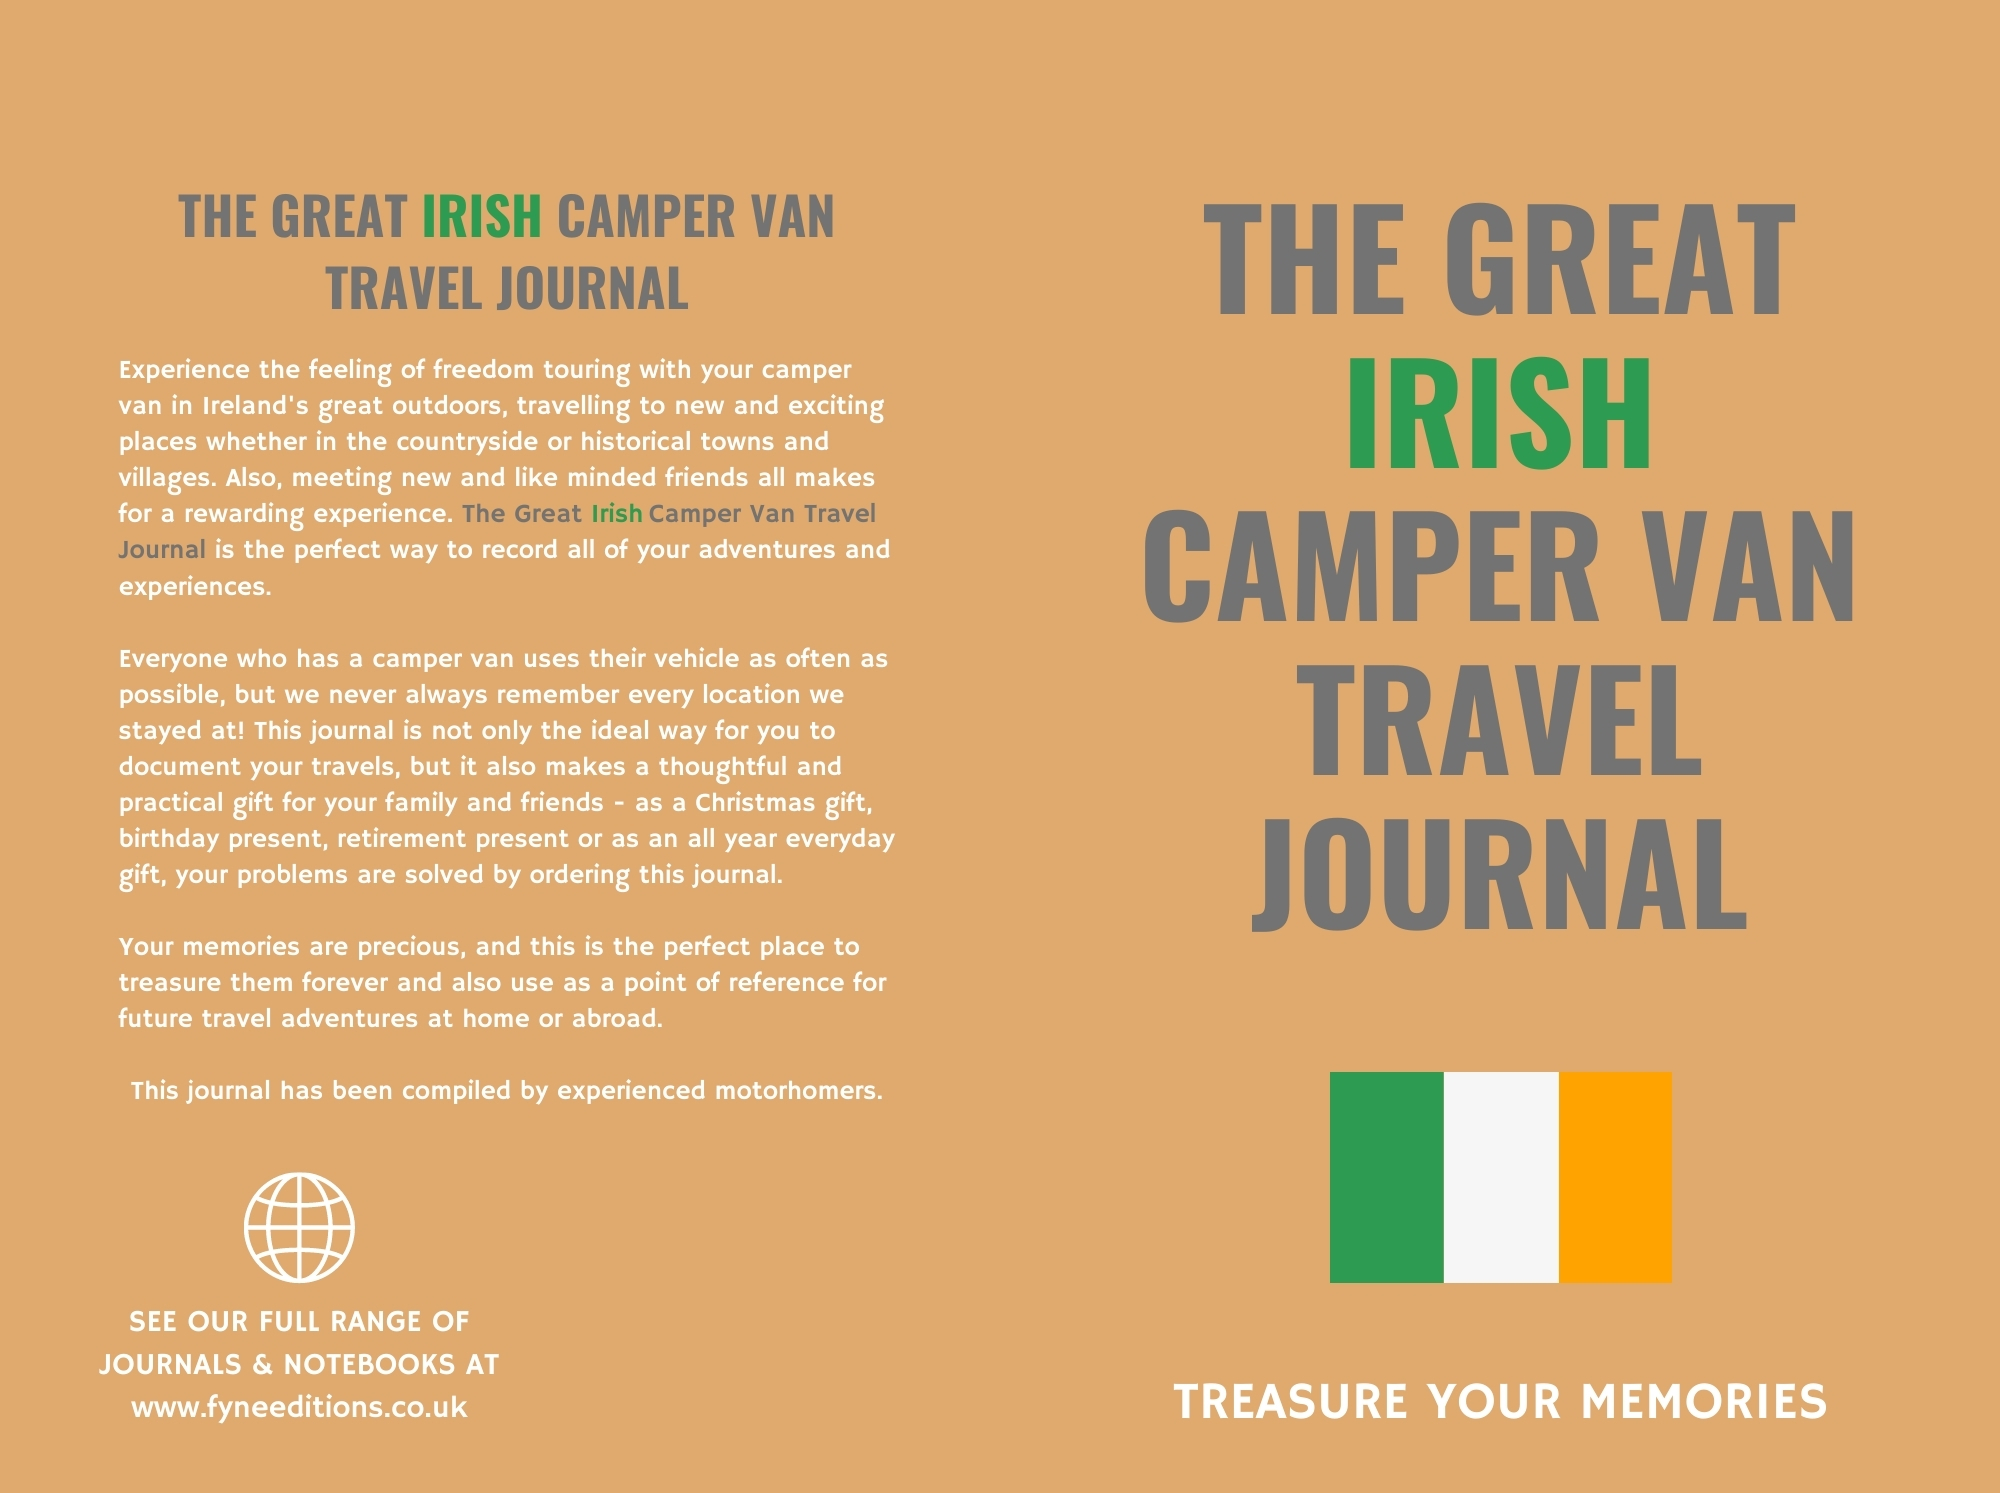 The Great Irish Camper Van Travel Journal